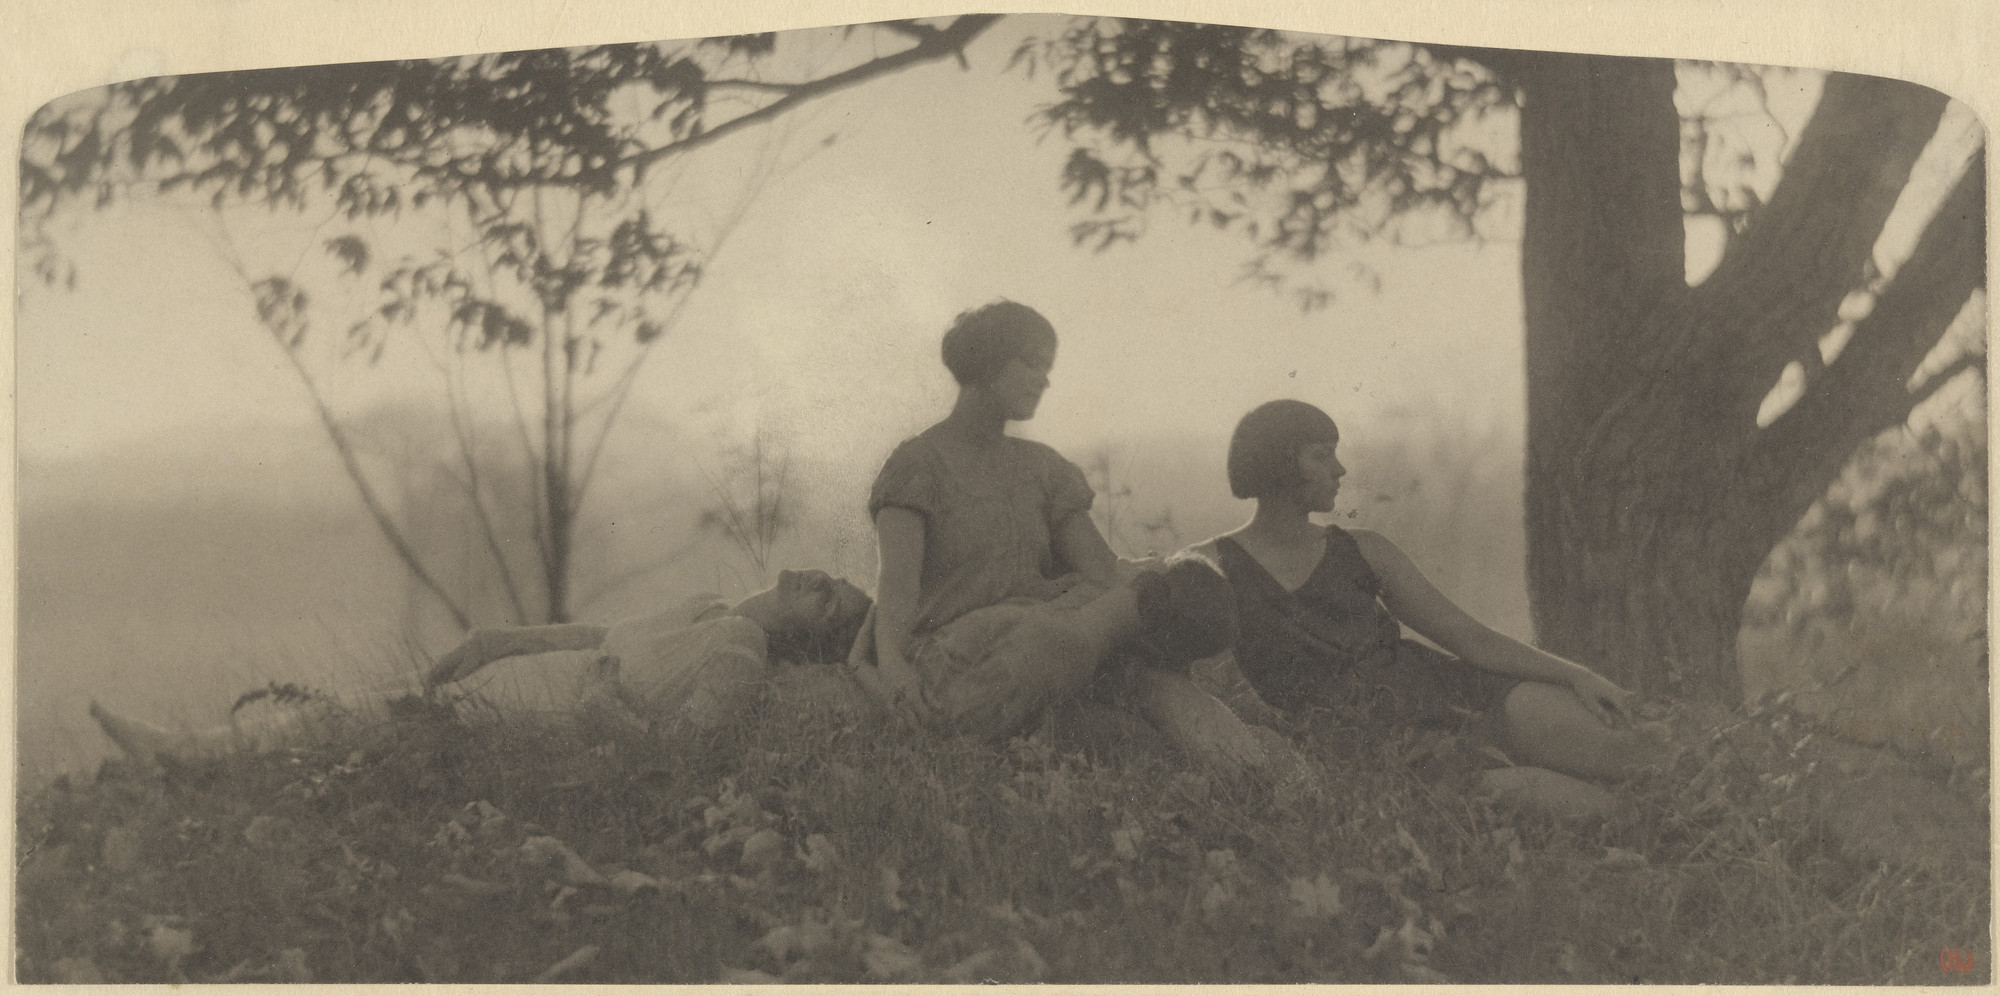 Clarence H. White. Autumn, the Larsen Dancers. 1924